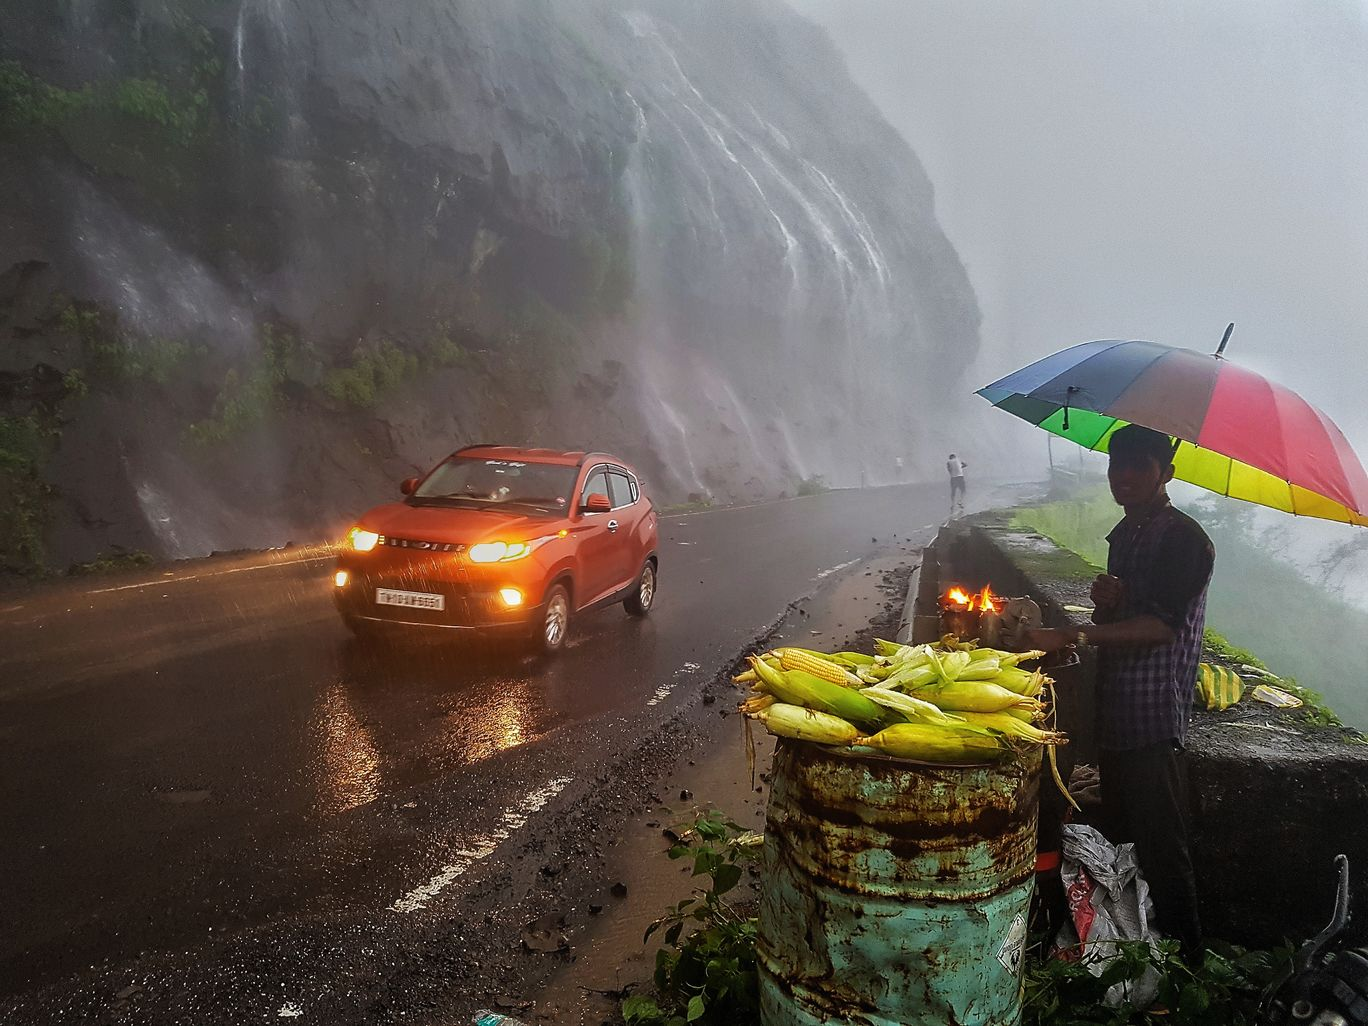 Photo of Malshej Ghat By Ram prasad iyengar